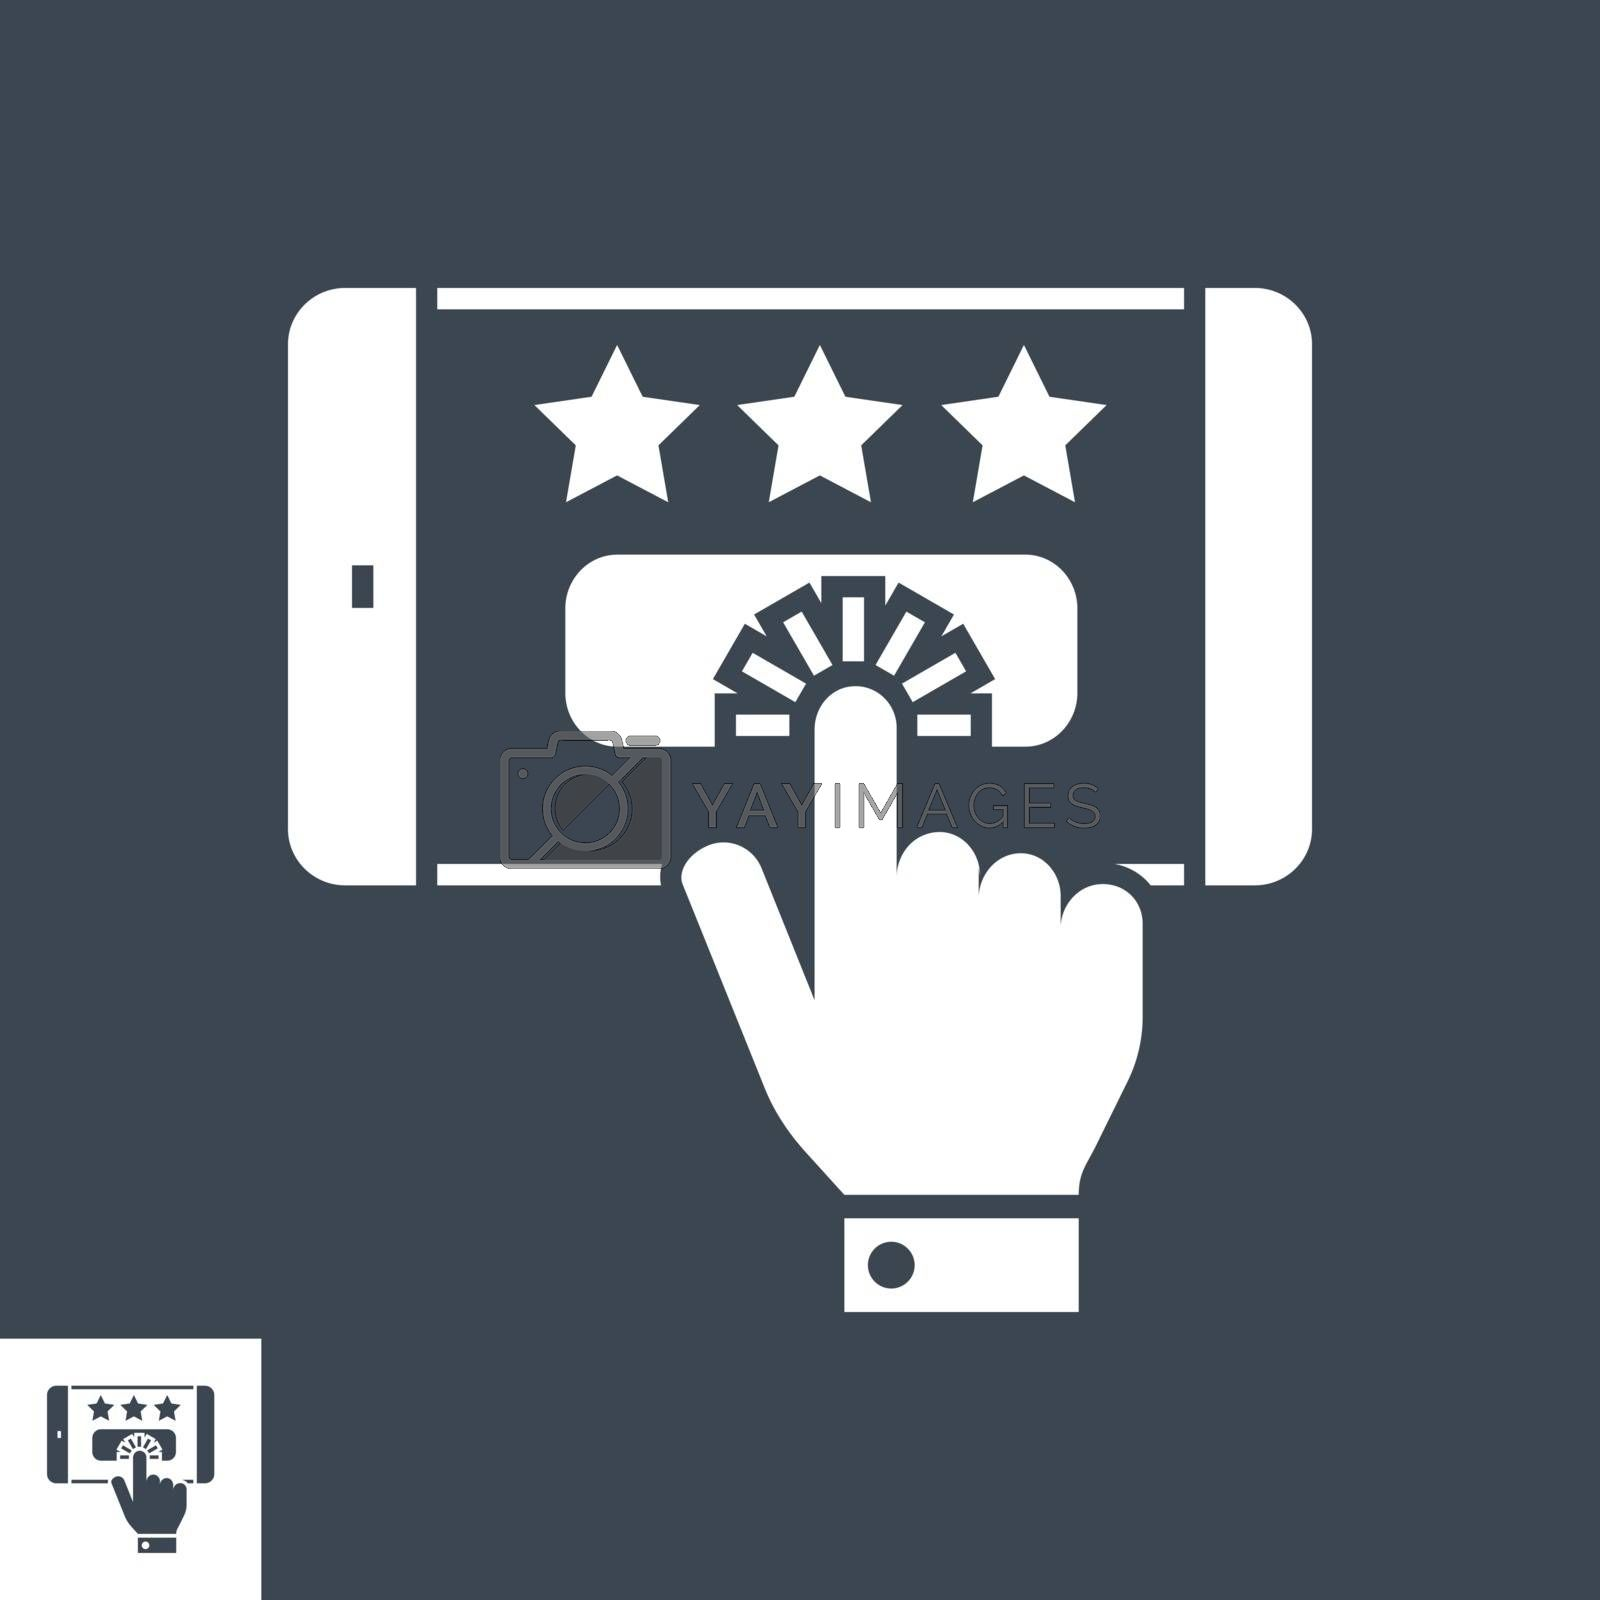 Customer Reviews Related Vector Glyph Icon. Isolated on Black Background. Vector Illustration.